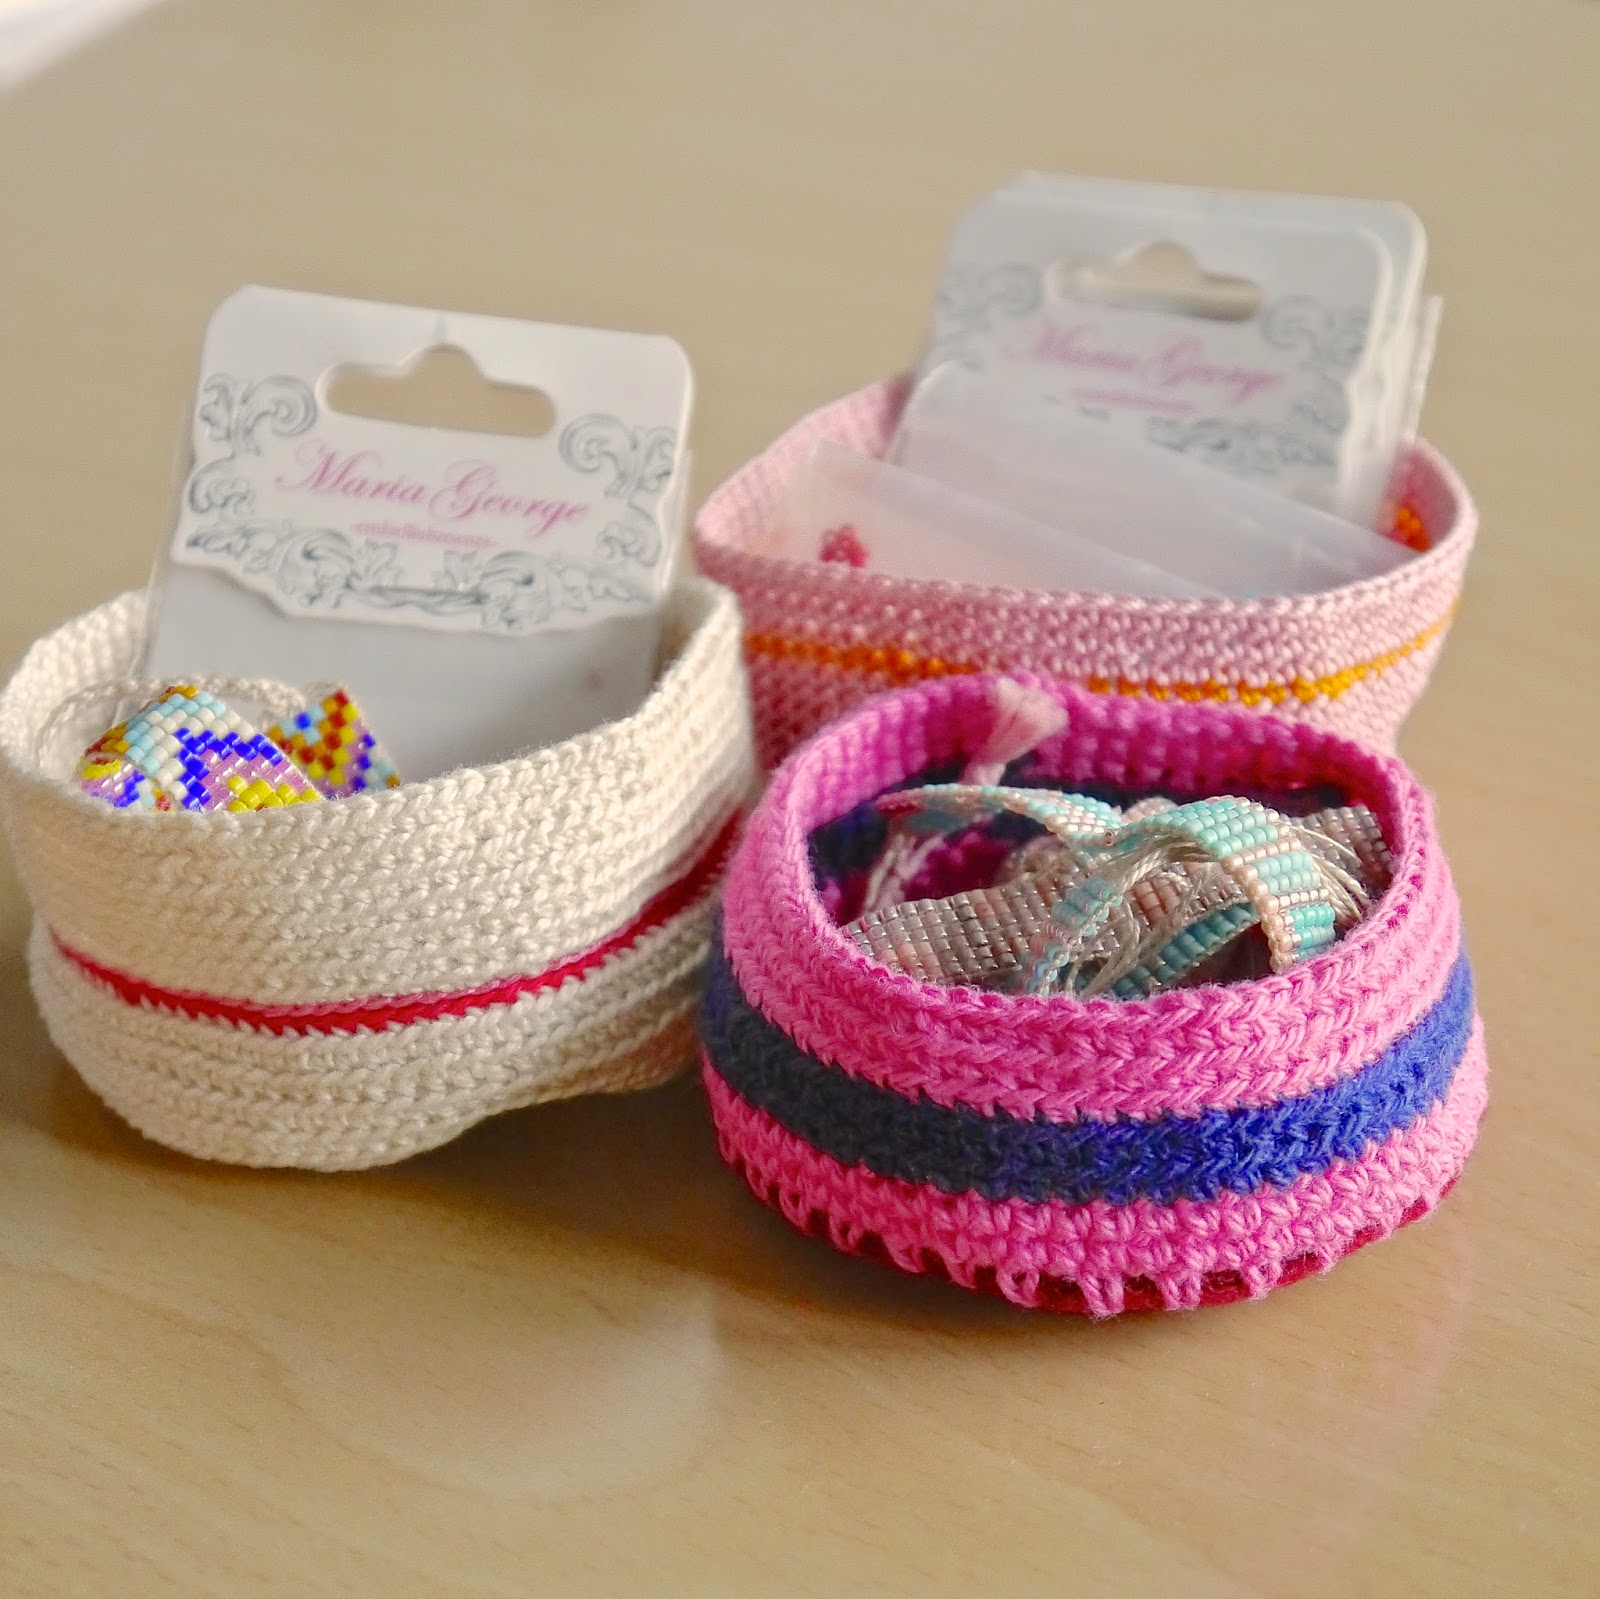 FREE tutorial for these cute little crotchet bowls from Sarita Creative